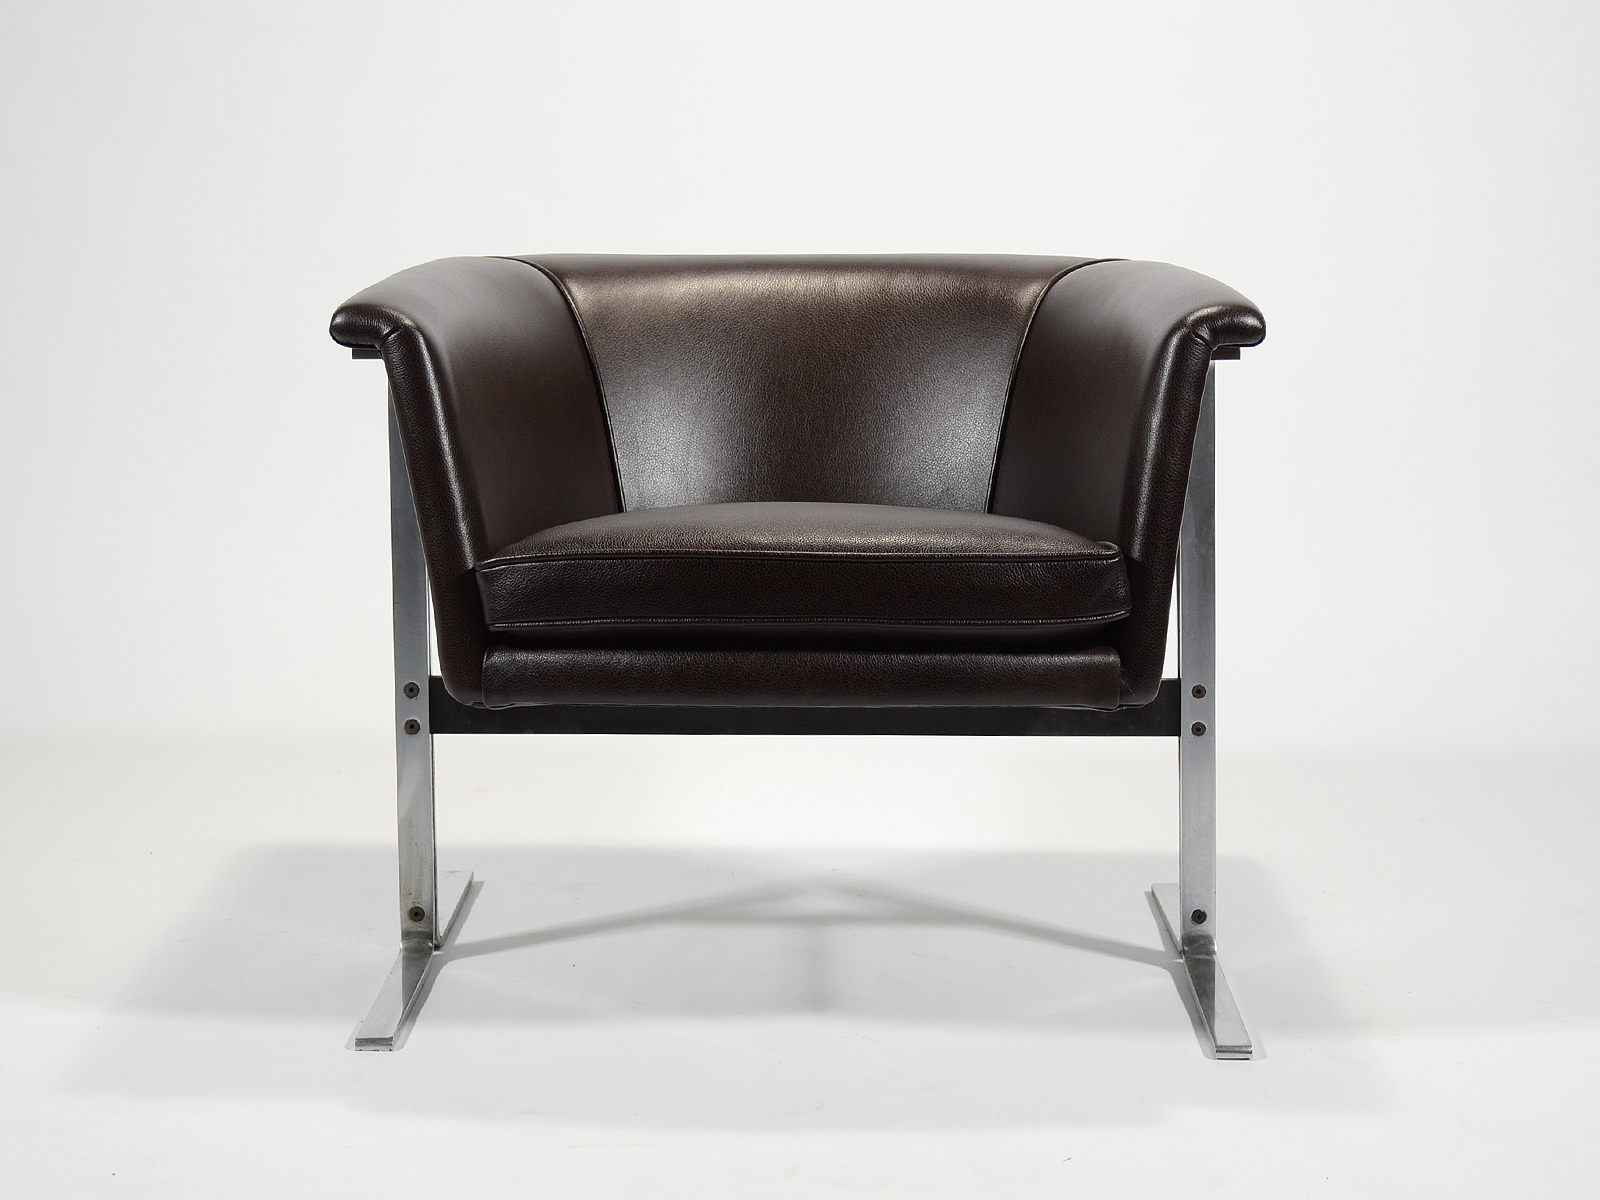 Harcourt Model 042 Lounge Chair